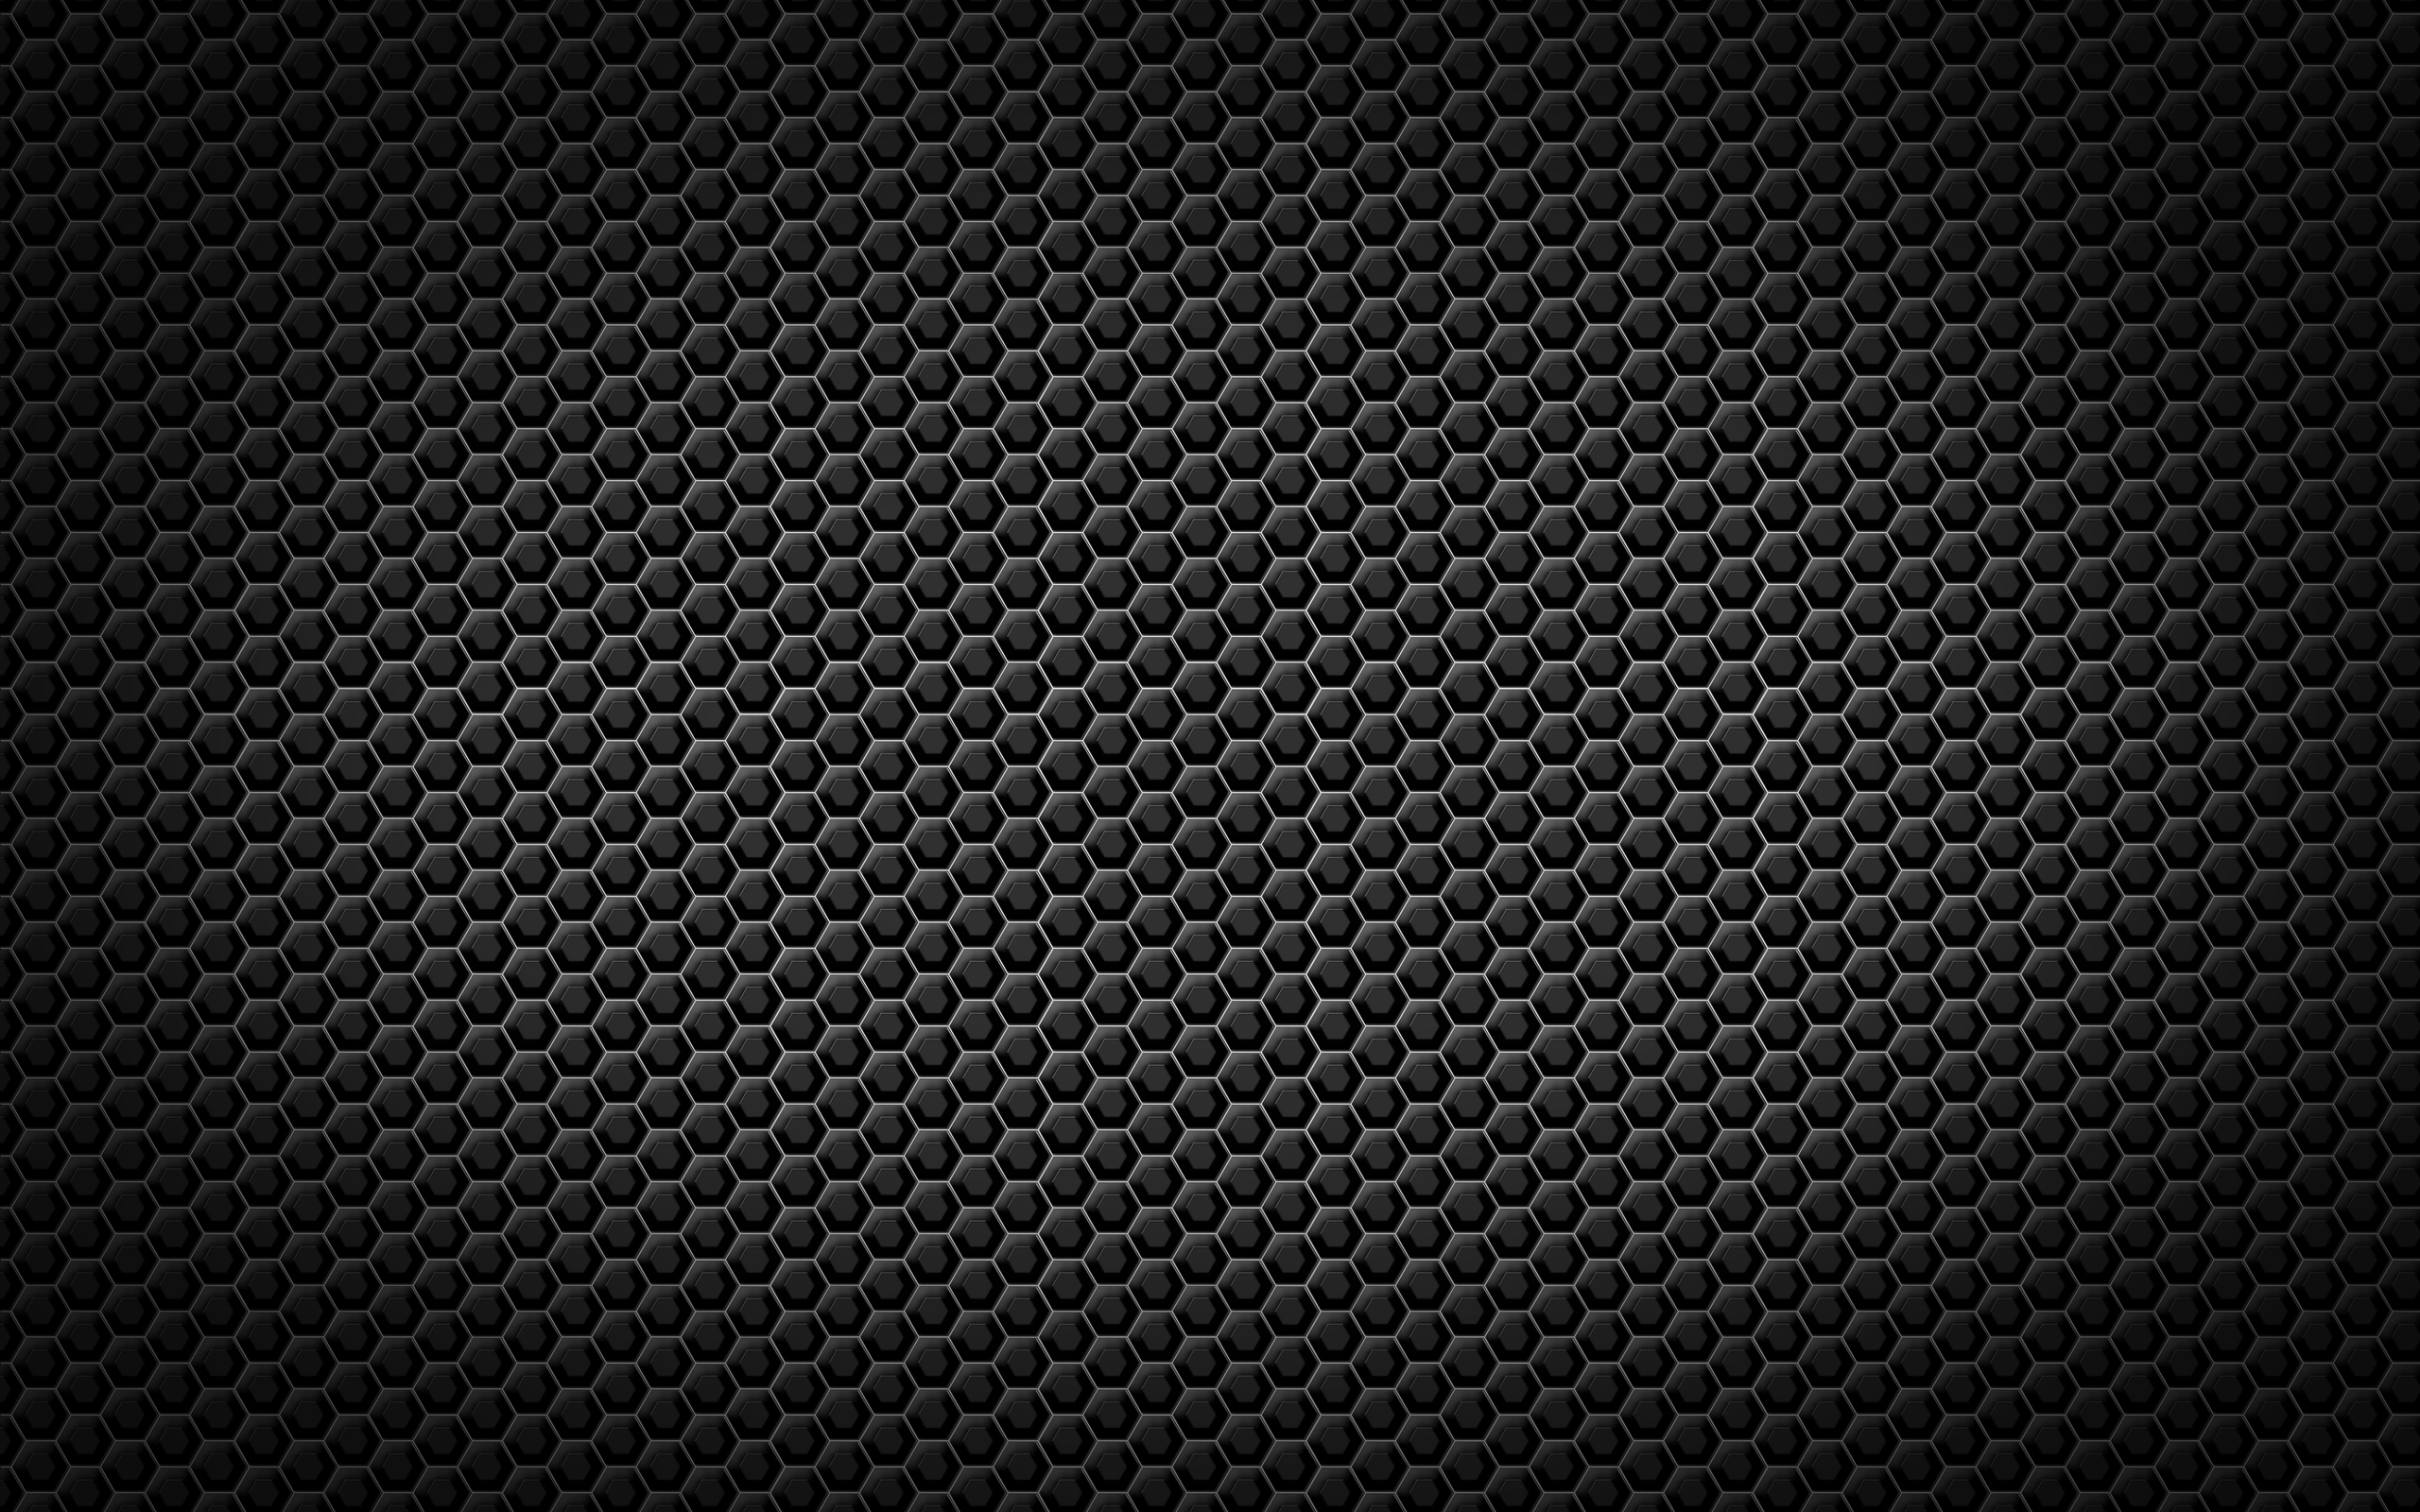 Wallpaper Black wallpaper texture Hex